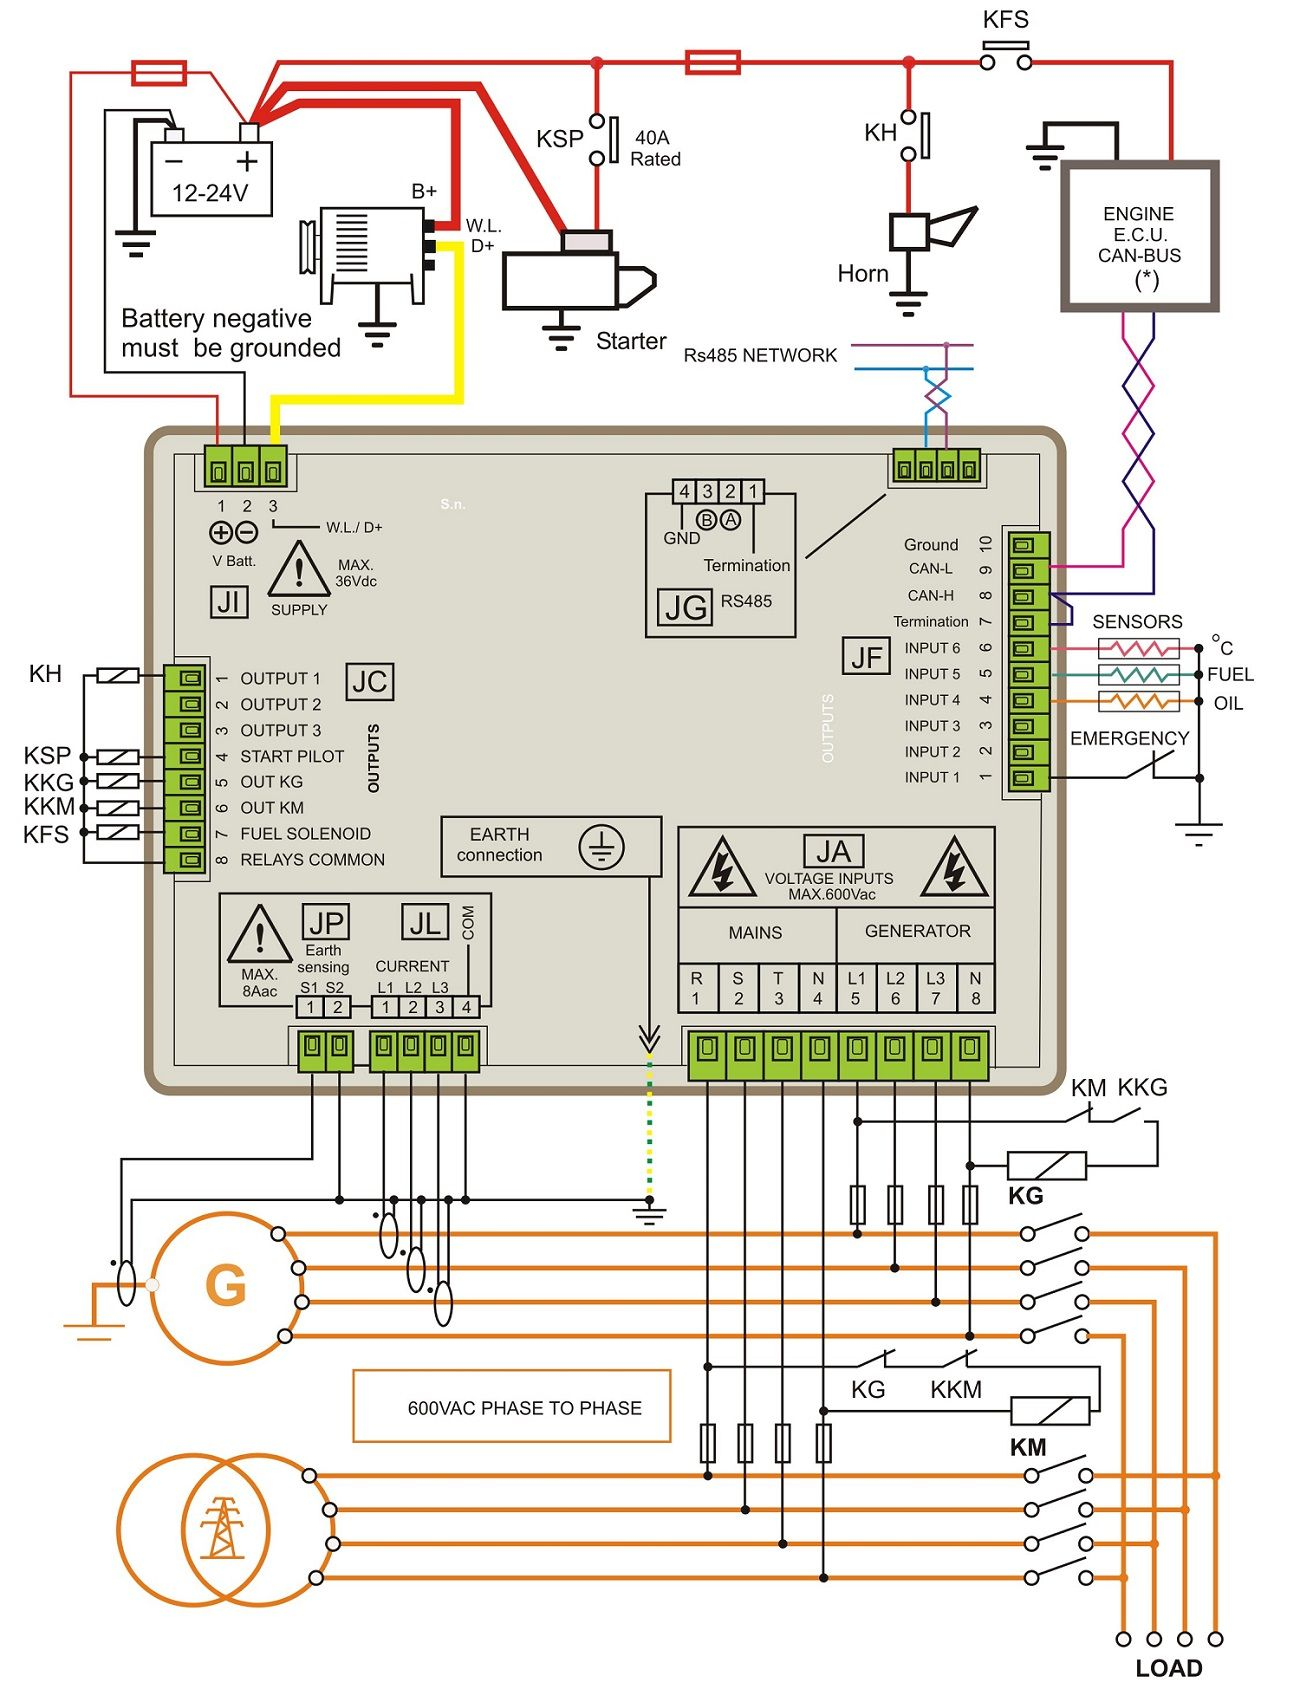 hight resolution of rh2b u relay wiring diagram electrical wiring diagram rh2b u relay wiring diagram